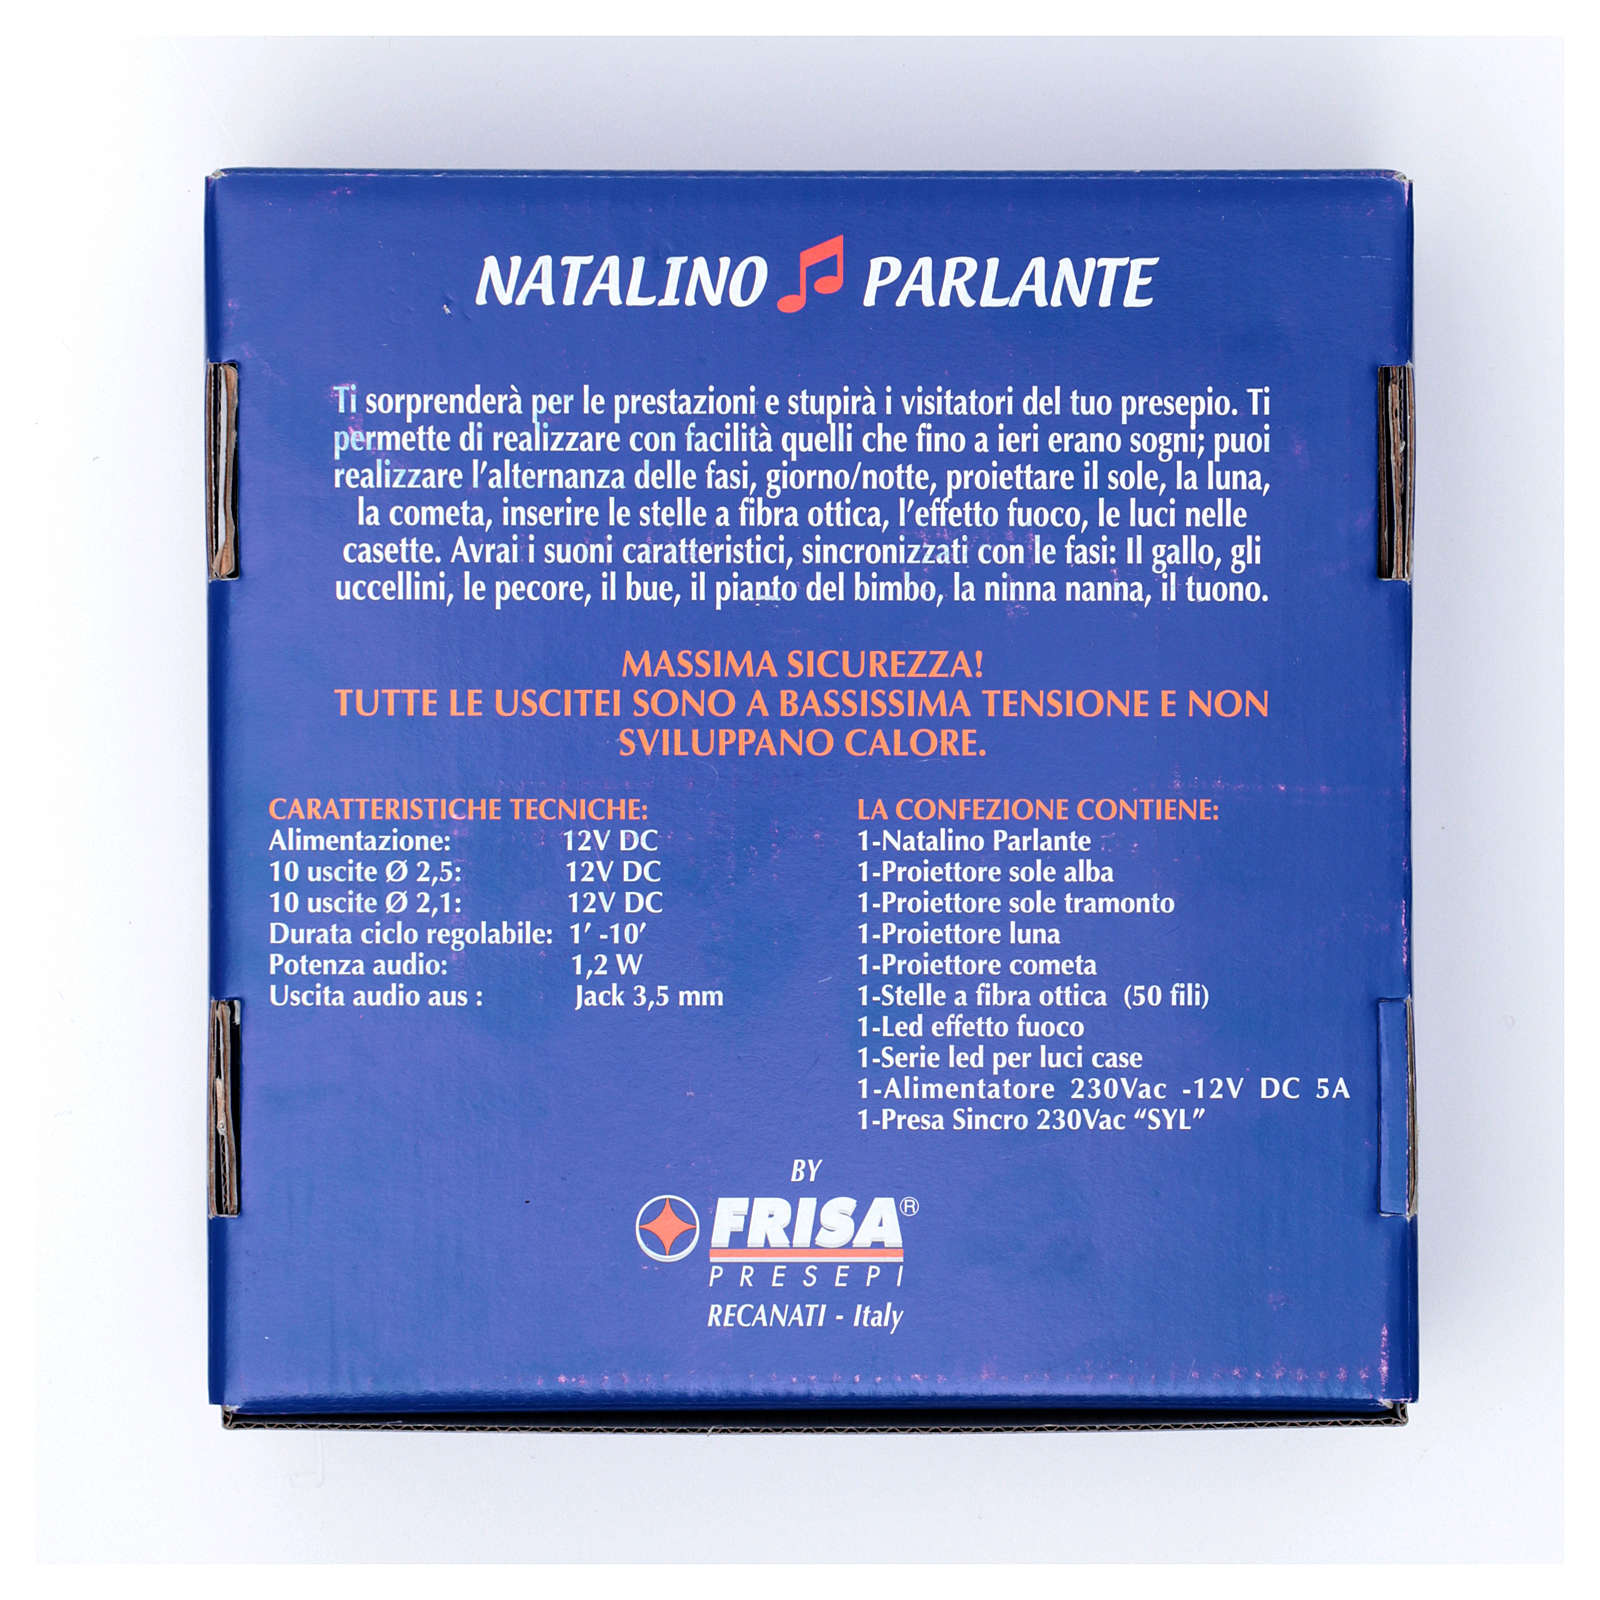 Natalino parlante led Frisalight light and sound effect 4